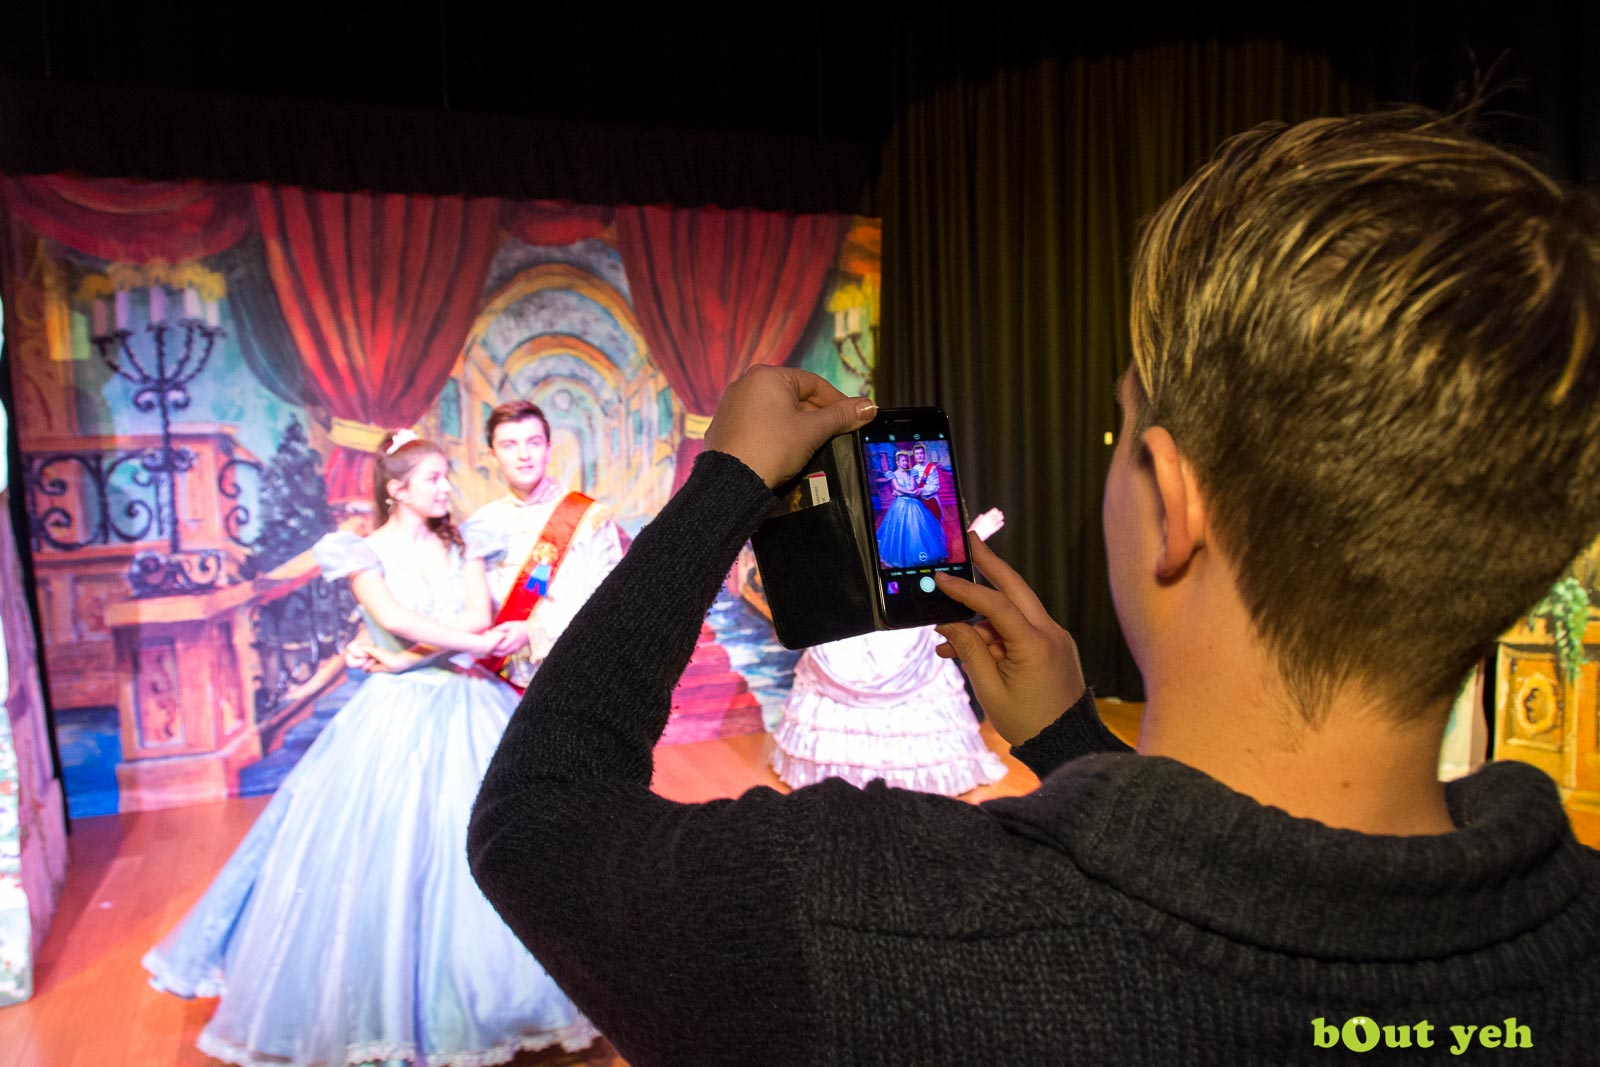 PR photographers Belfast portfolio photo 0080 of Cinderella pantomime at the Old Courthouse Theatre Antrim - Bout Yeh photography and video production services Belfast, Northern Ireland